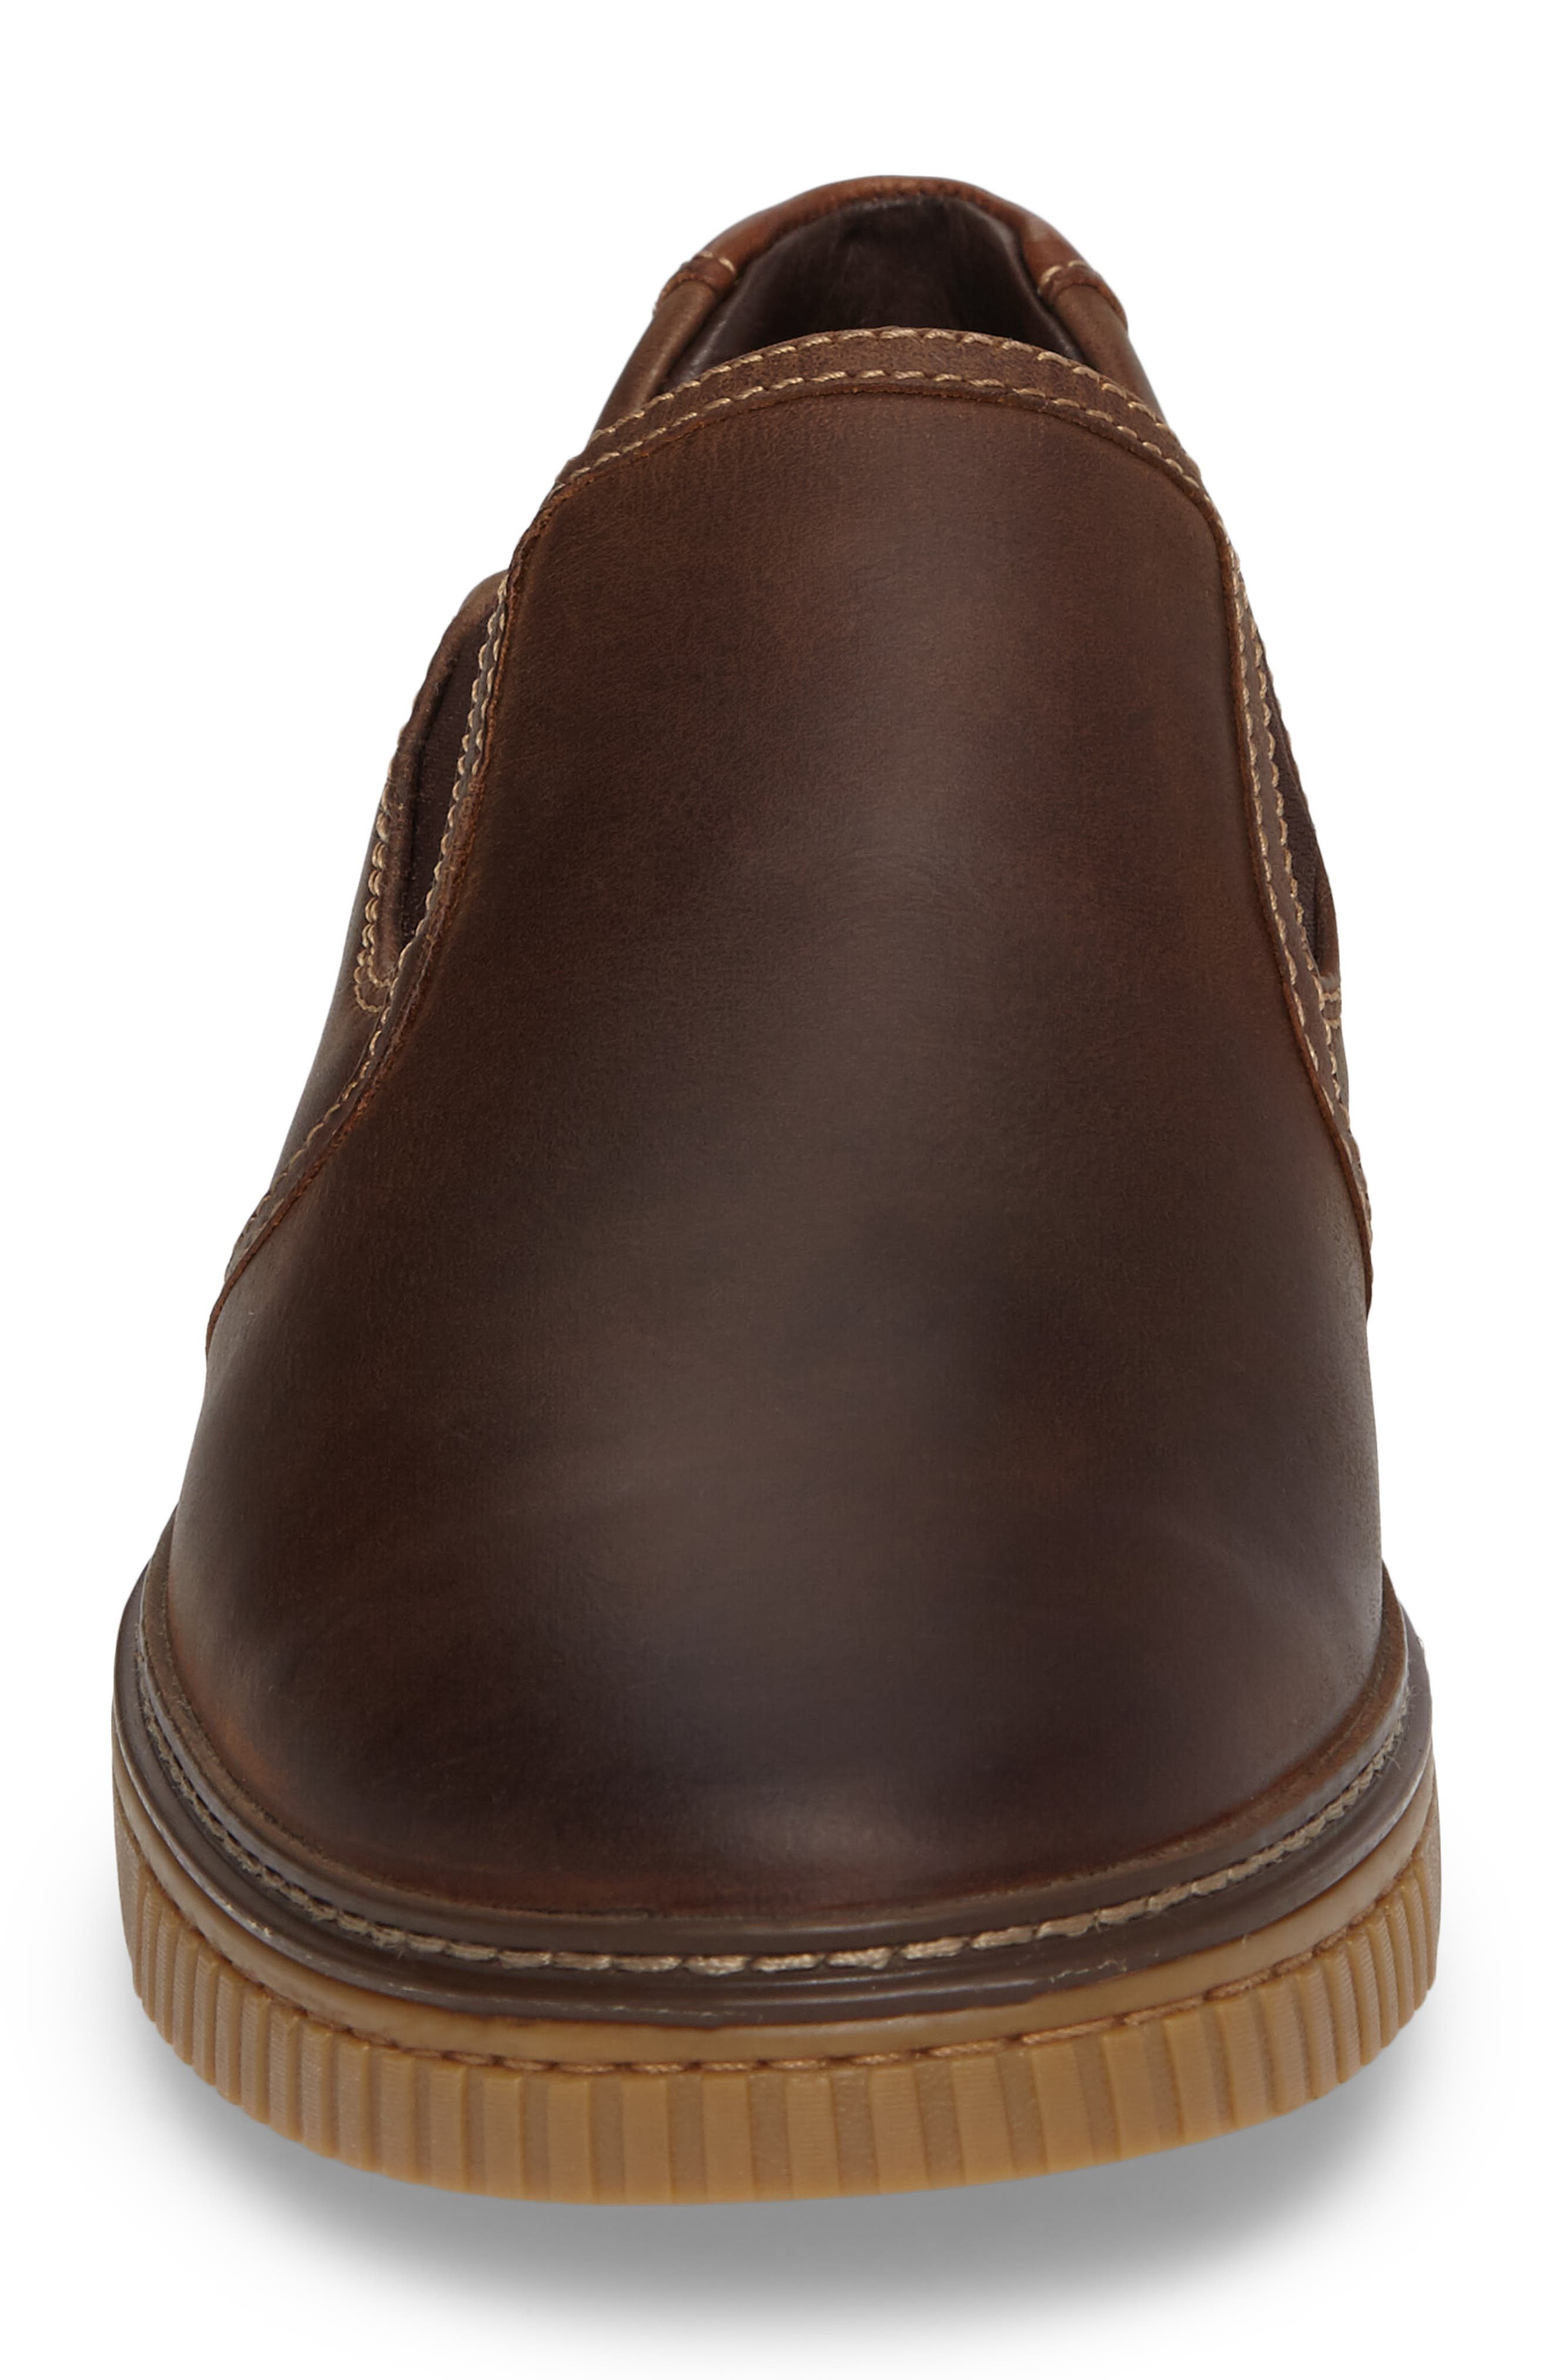 Wallace Slip-On Sneaker,                             Alternate thumbnail 4, color,                             Brown